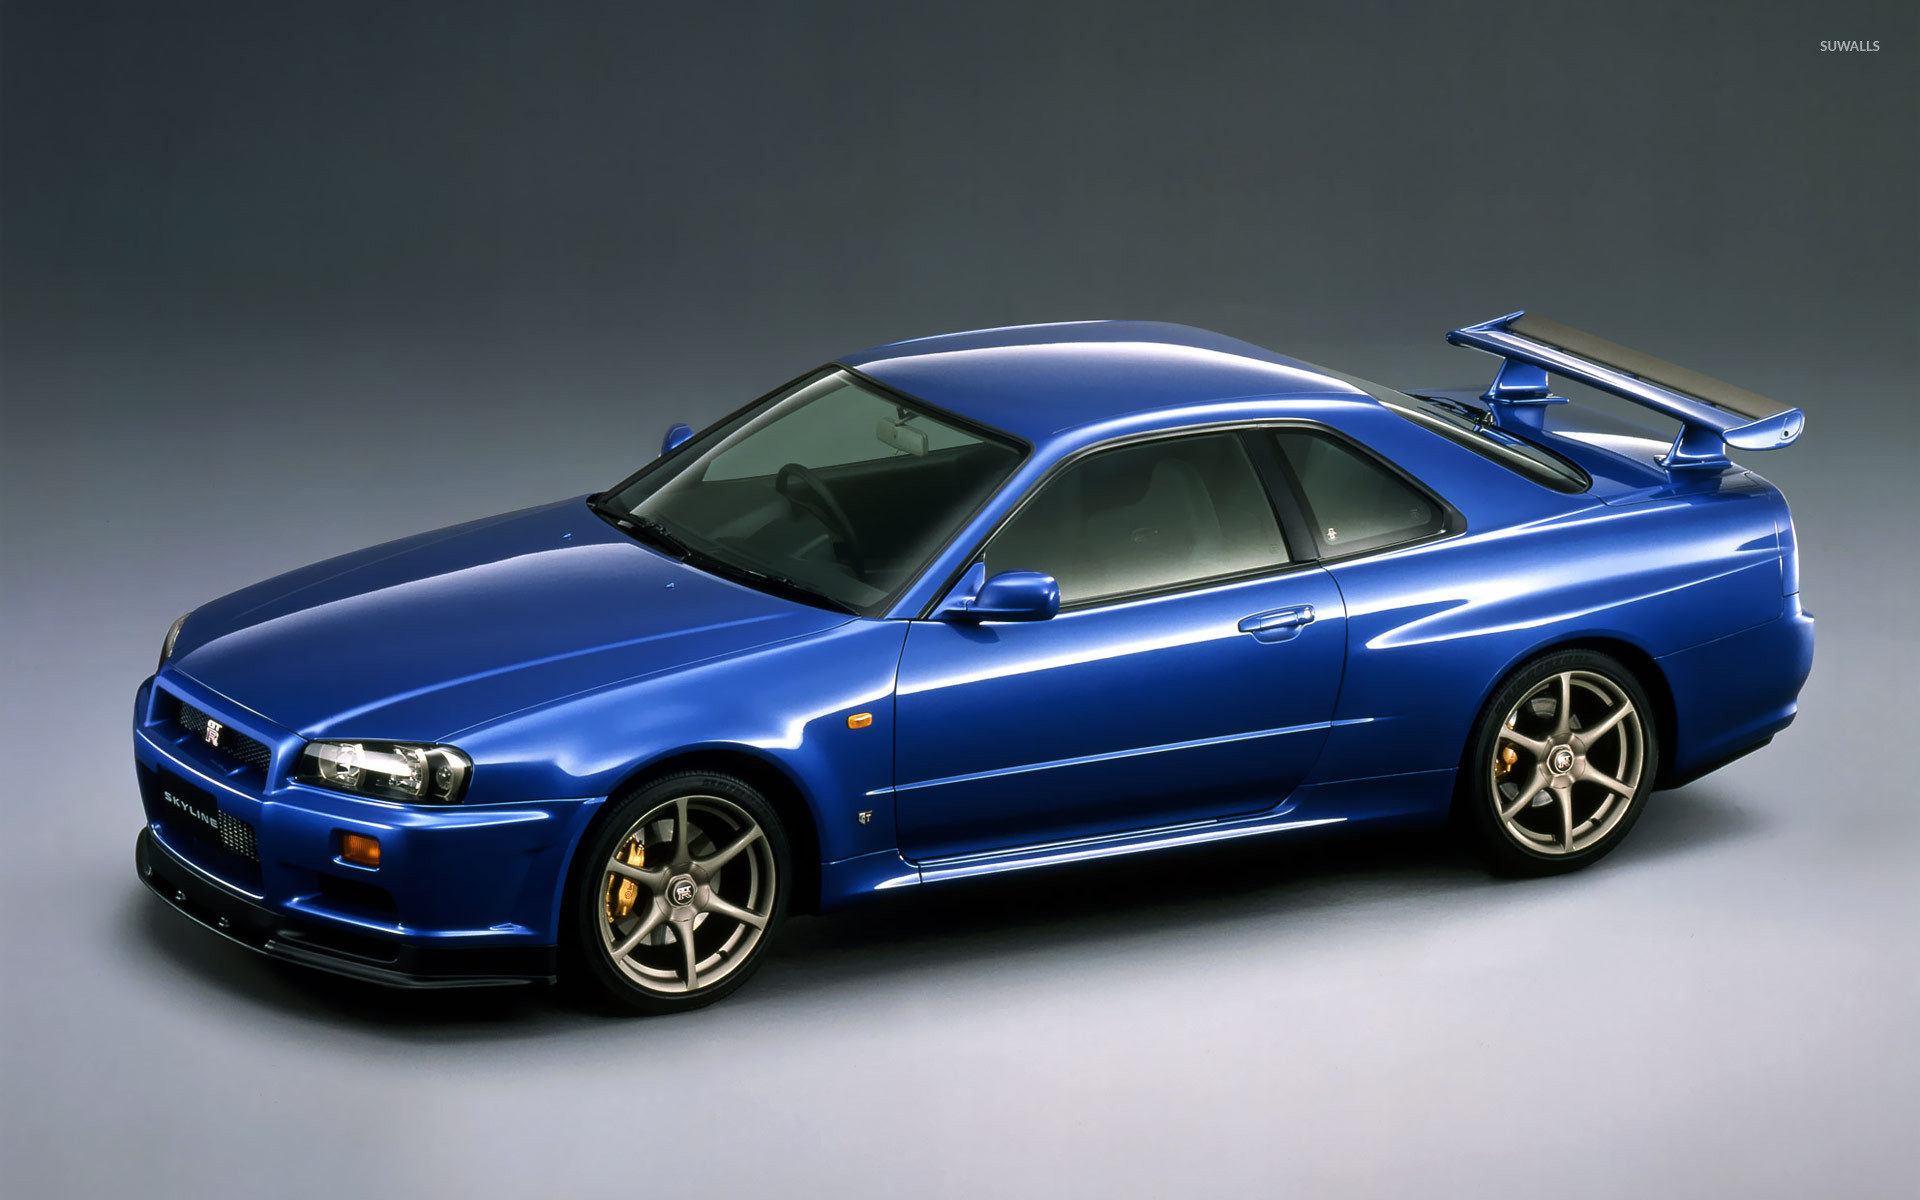 1920x1200 Nissan Skyline GT-R V-spec R34 wallpaper  jpg